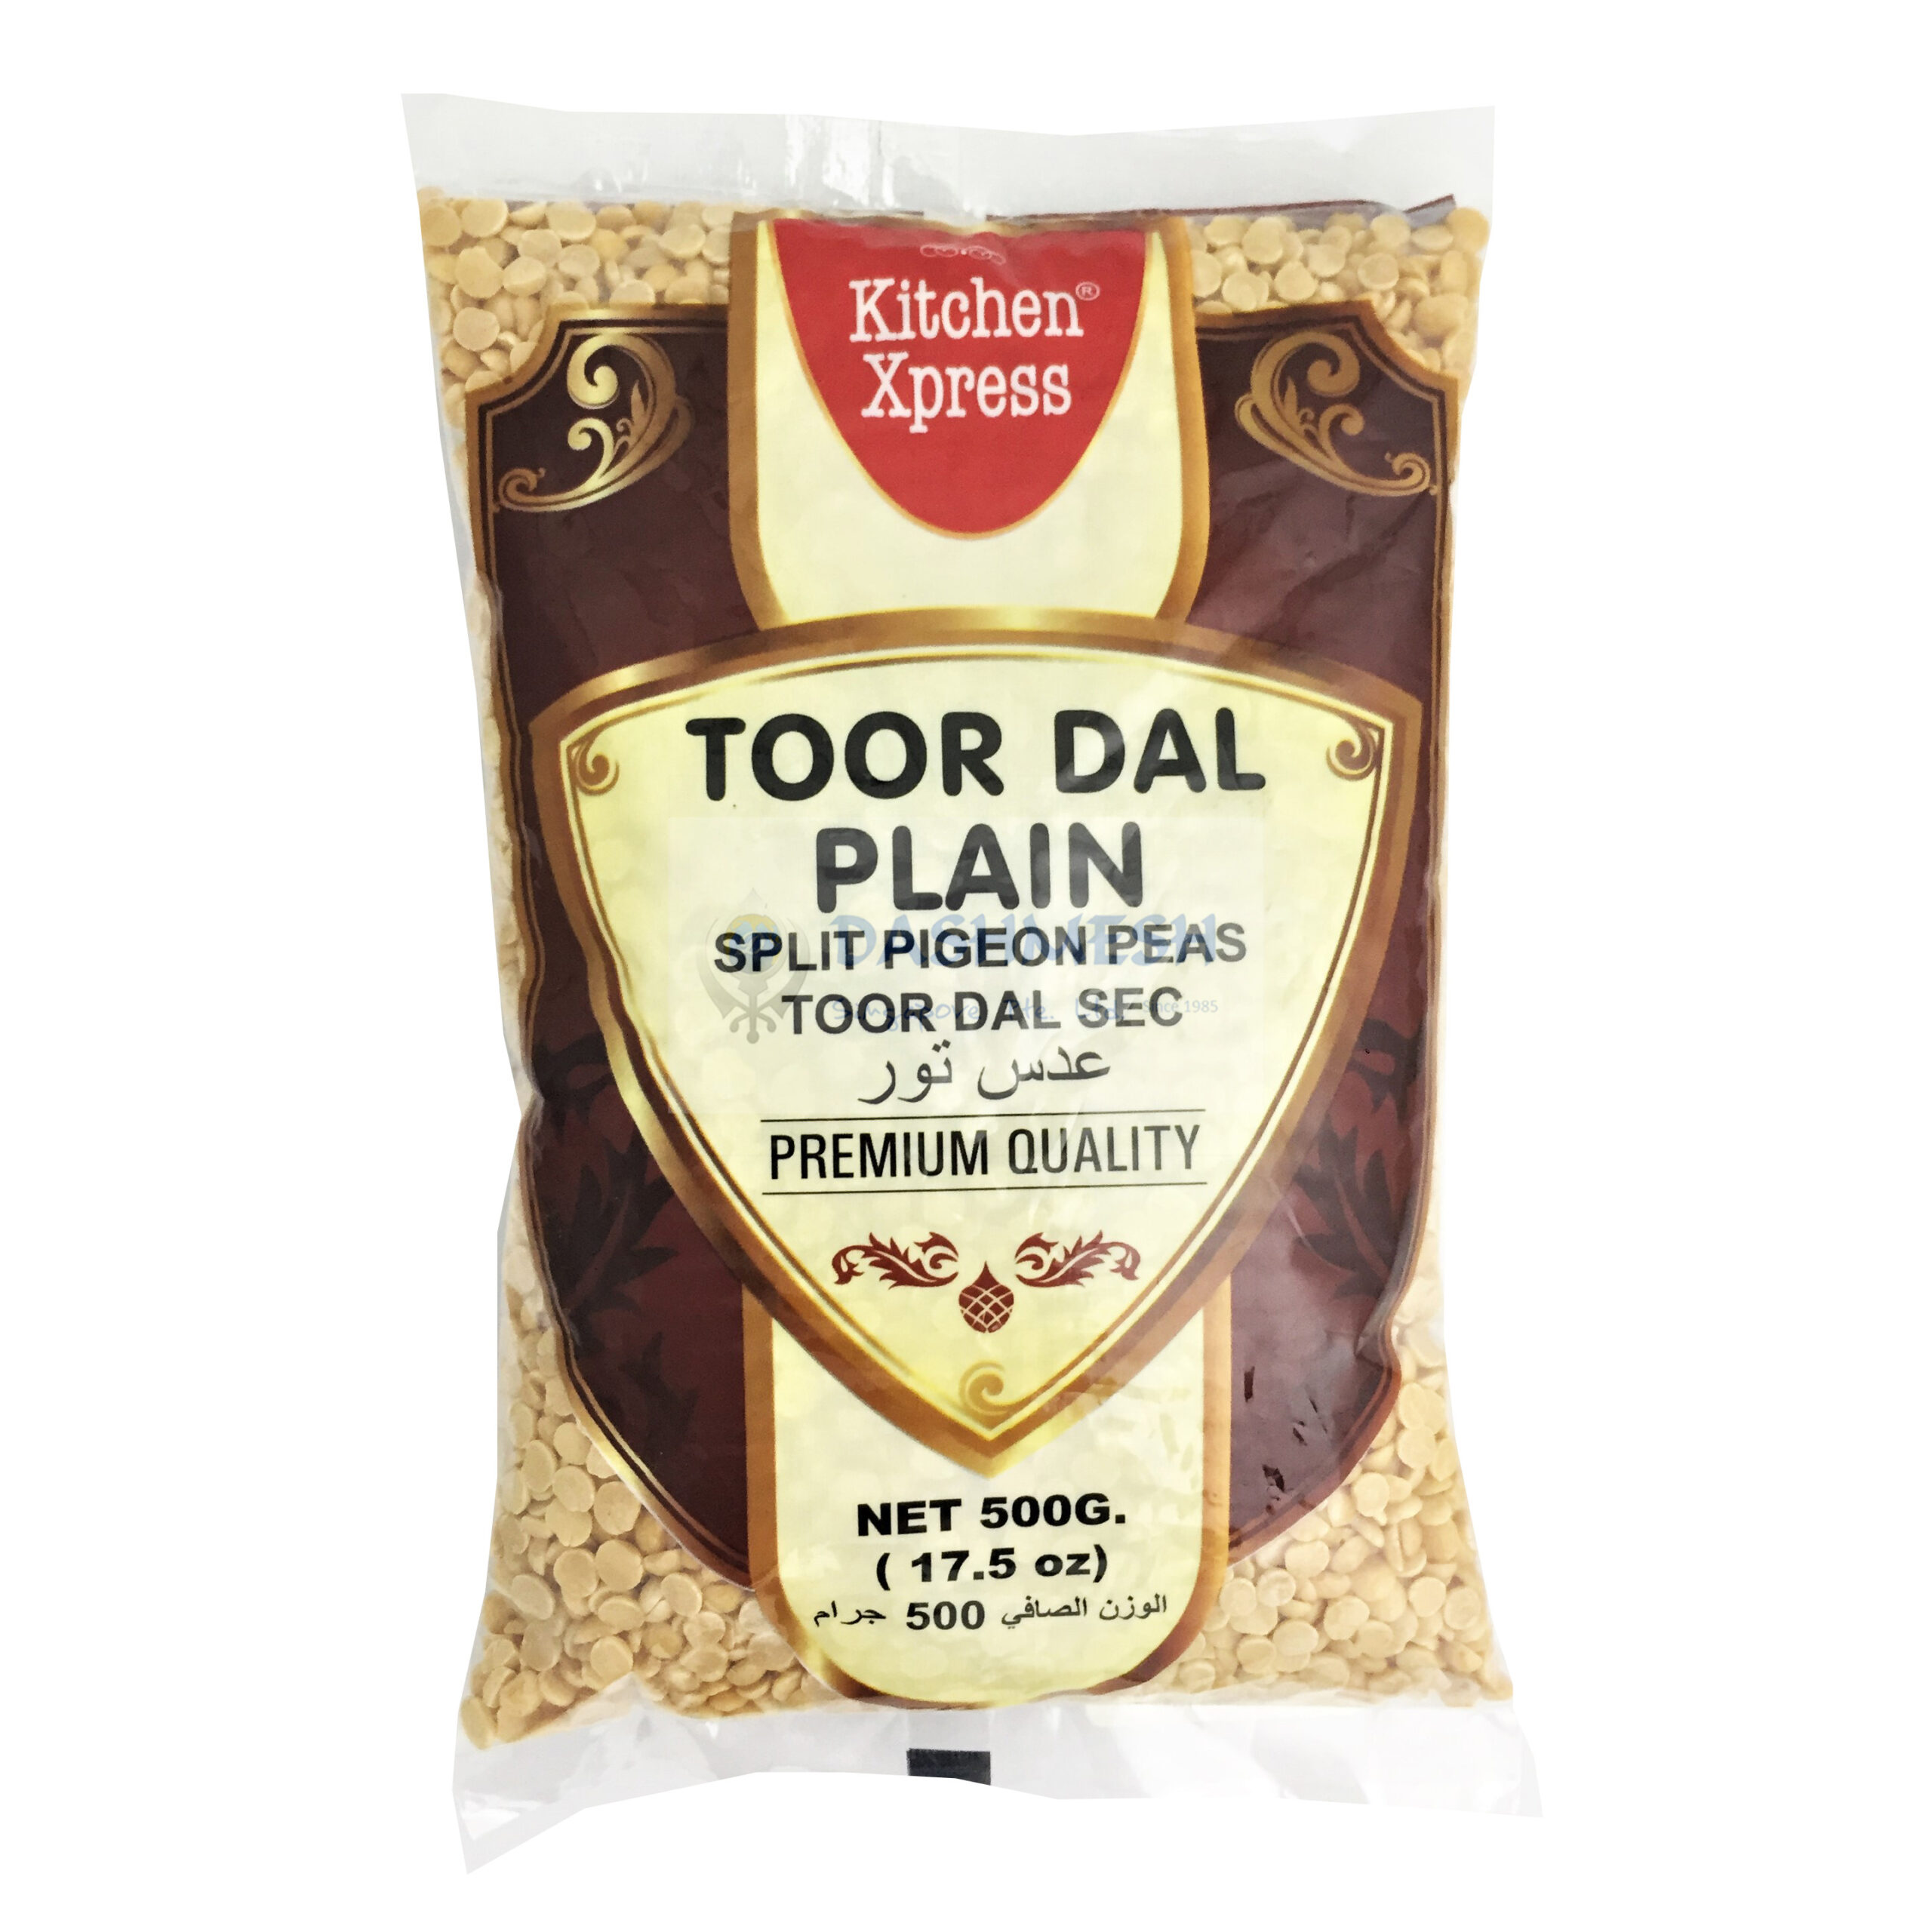 Kitchen Xpress Toor Dal Plain 500g, 1Kg & 5Kg